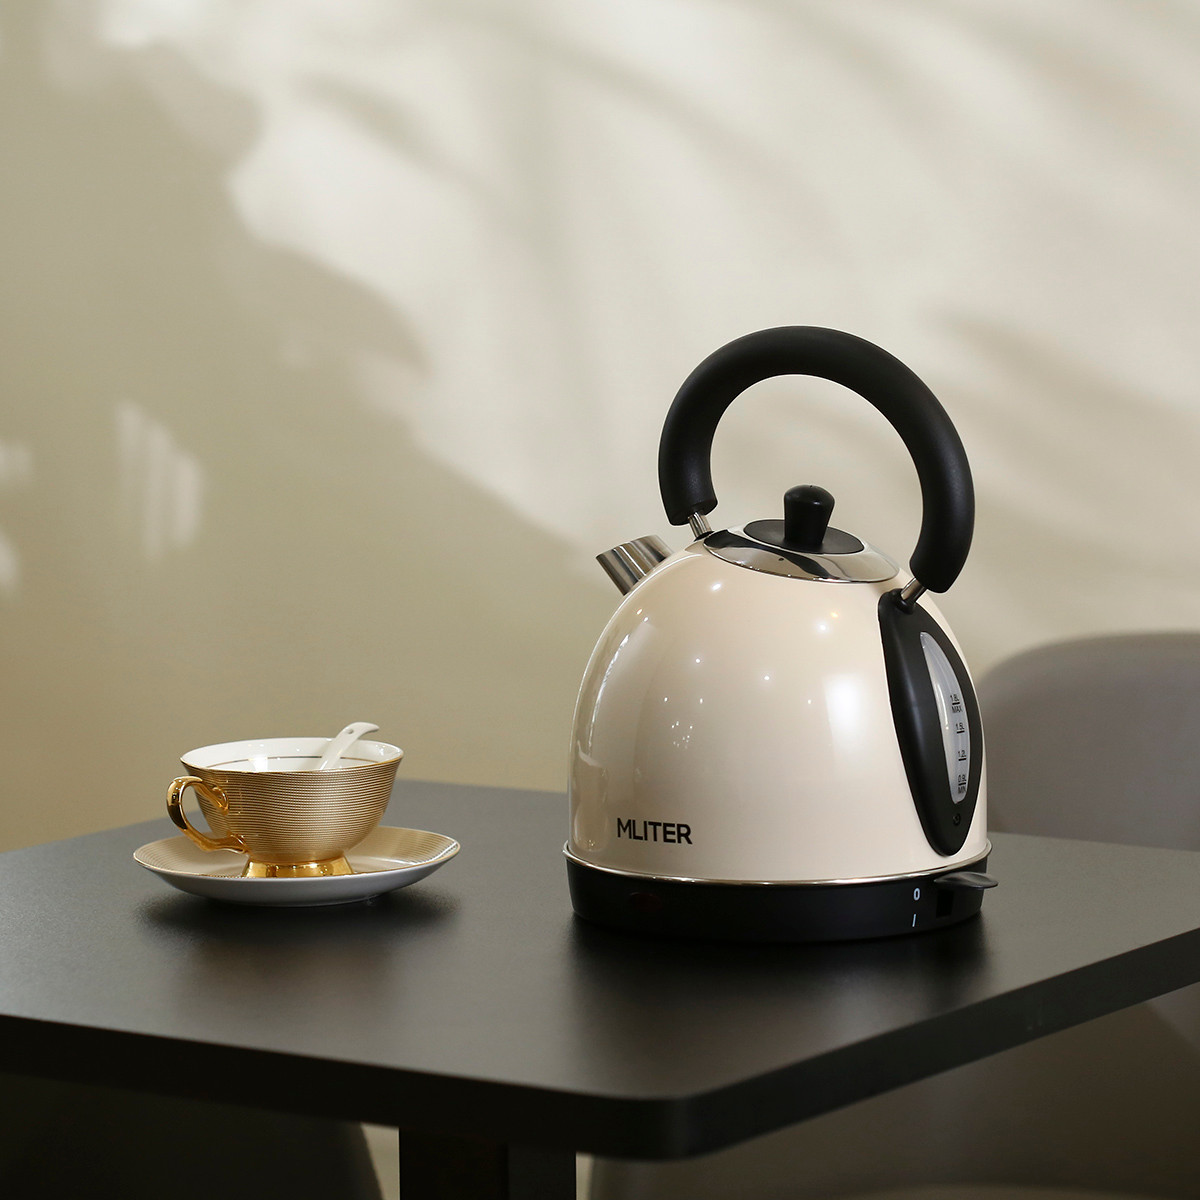 Mliter Electric Dome Kettle 3000W 1.8 Litre, Cordless, Stainless Steel, Cream-coloured, Boil Dry Protection- Beige